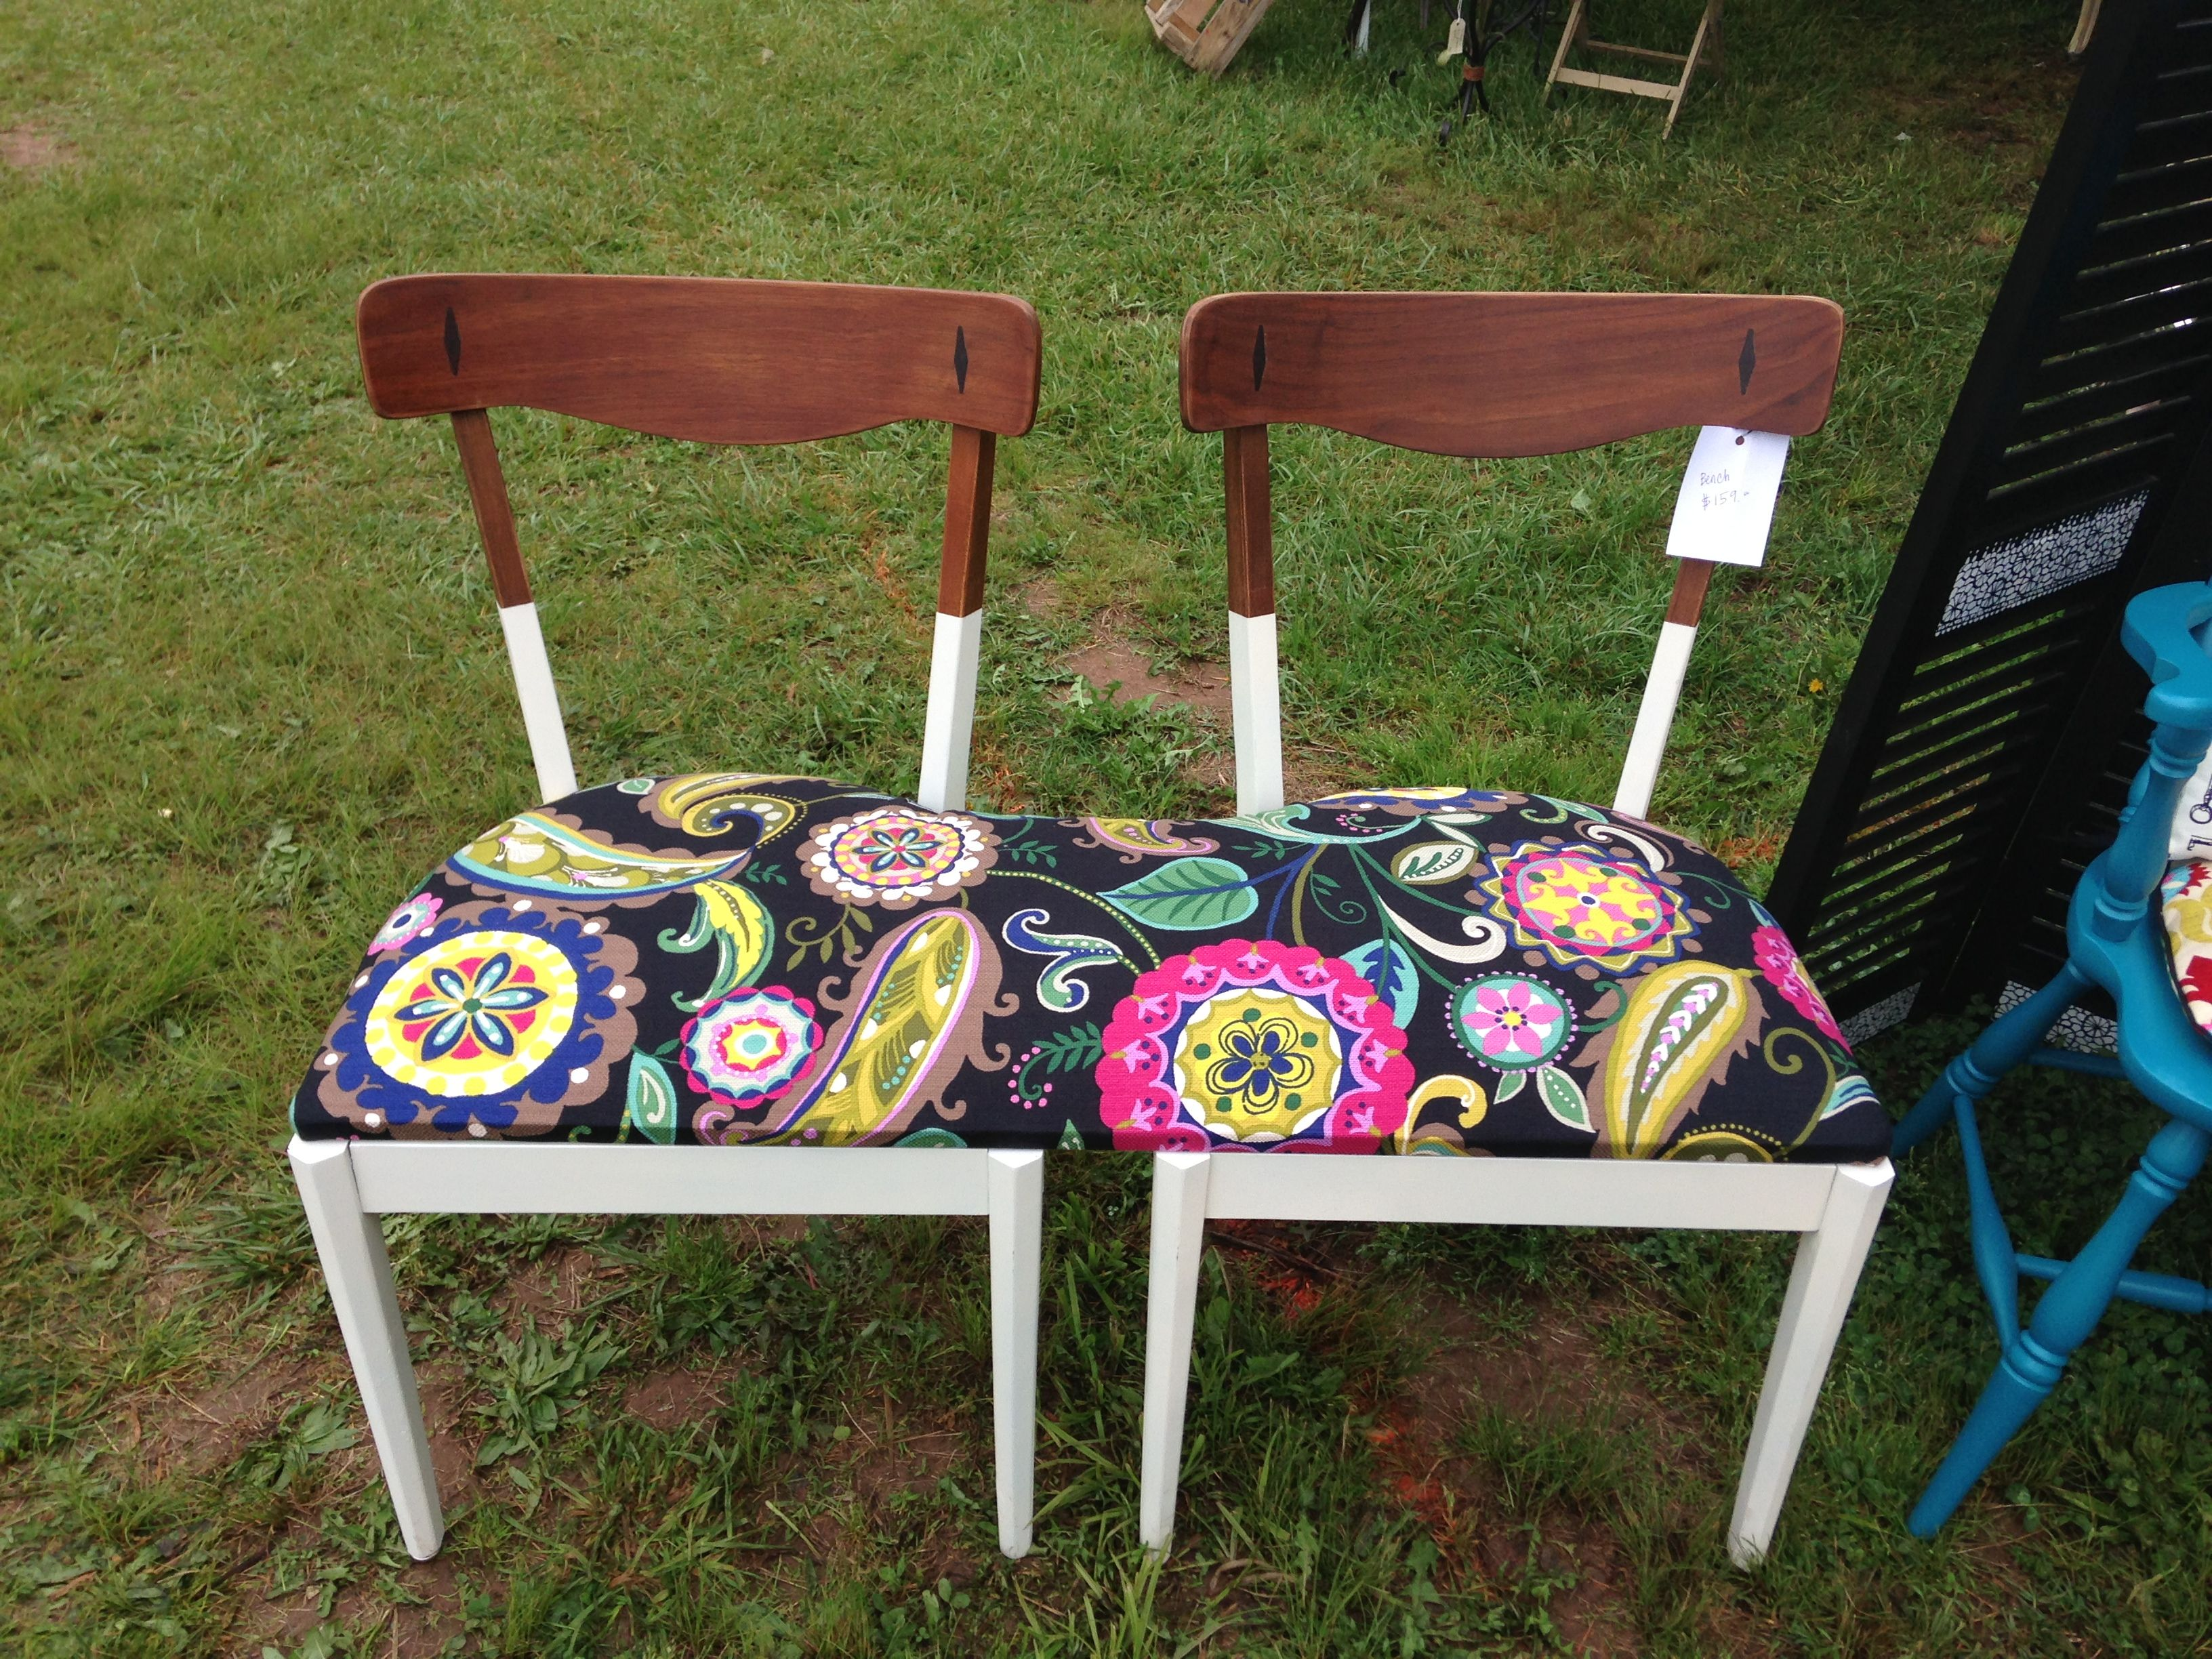 Saw This at the Lucketts Spring Antique Festival. 5-19-13, Leesburg VA